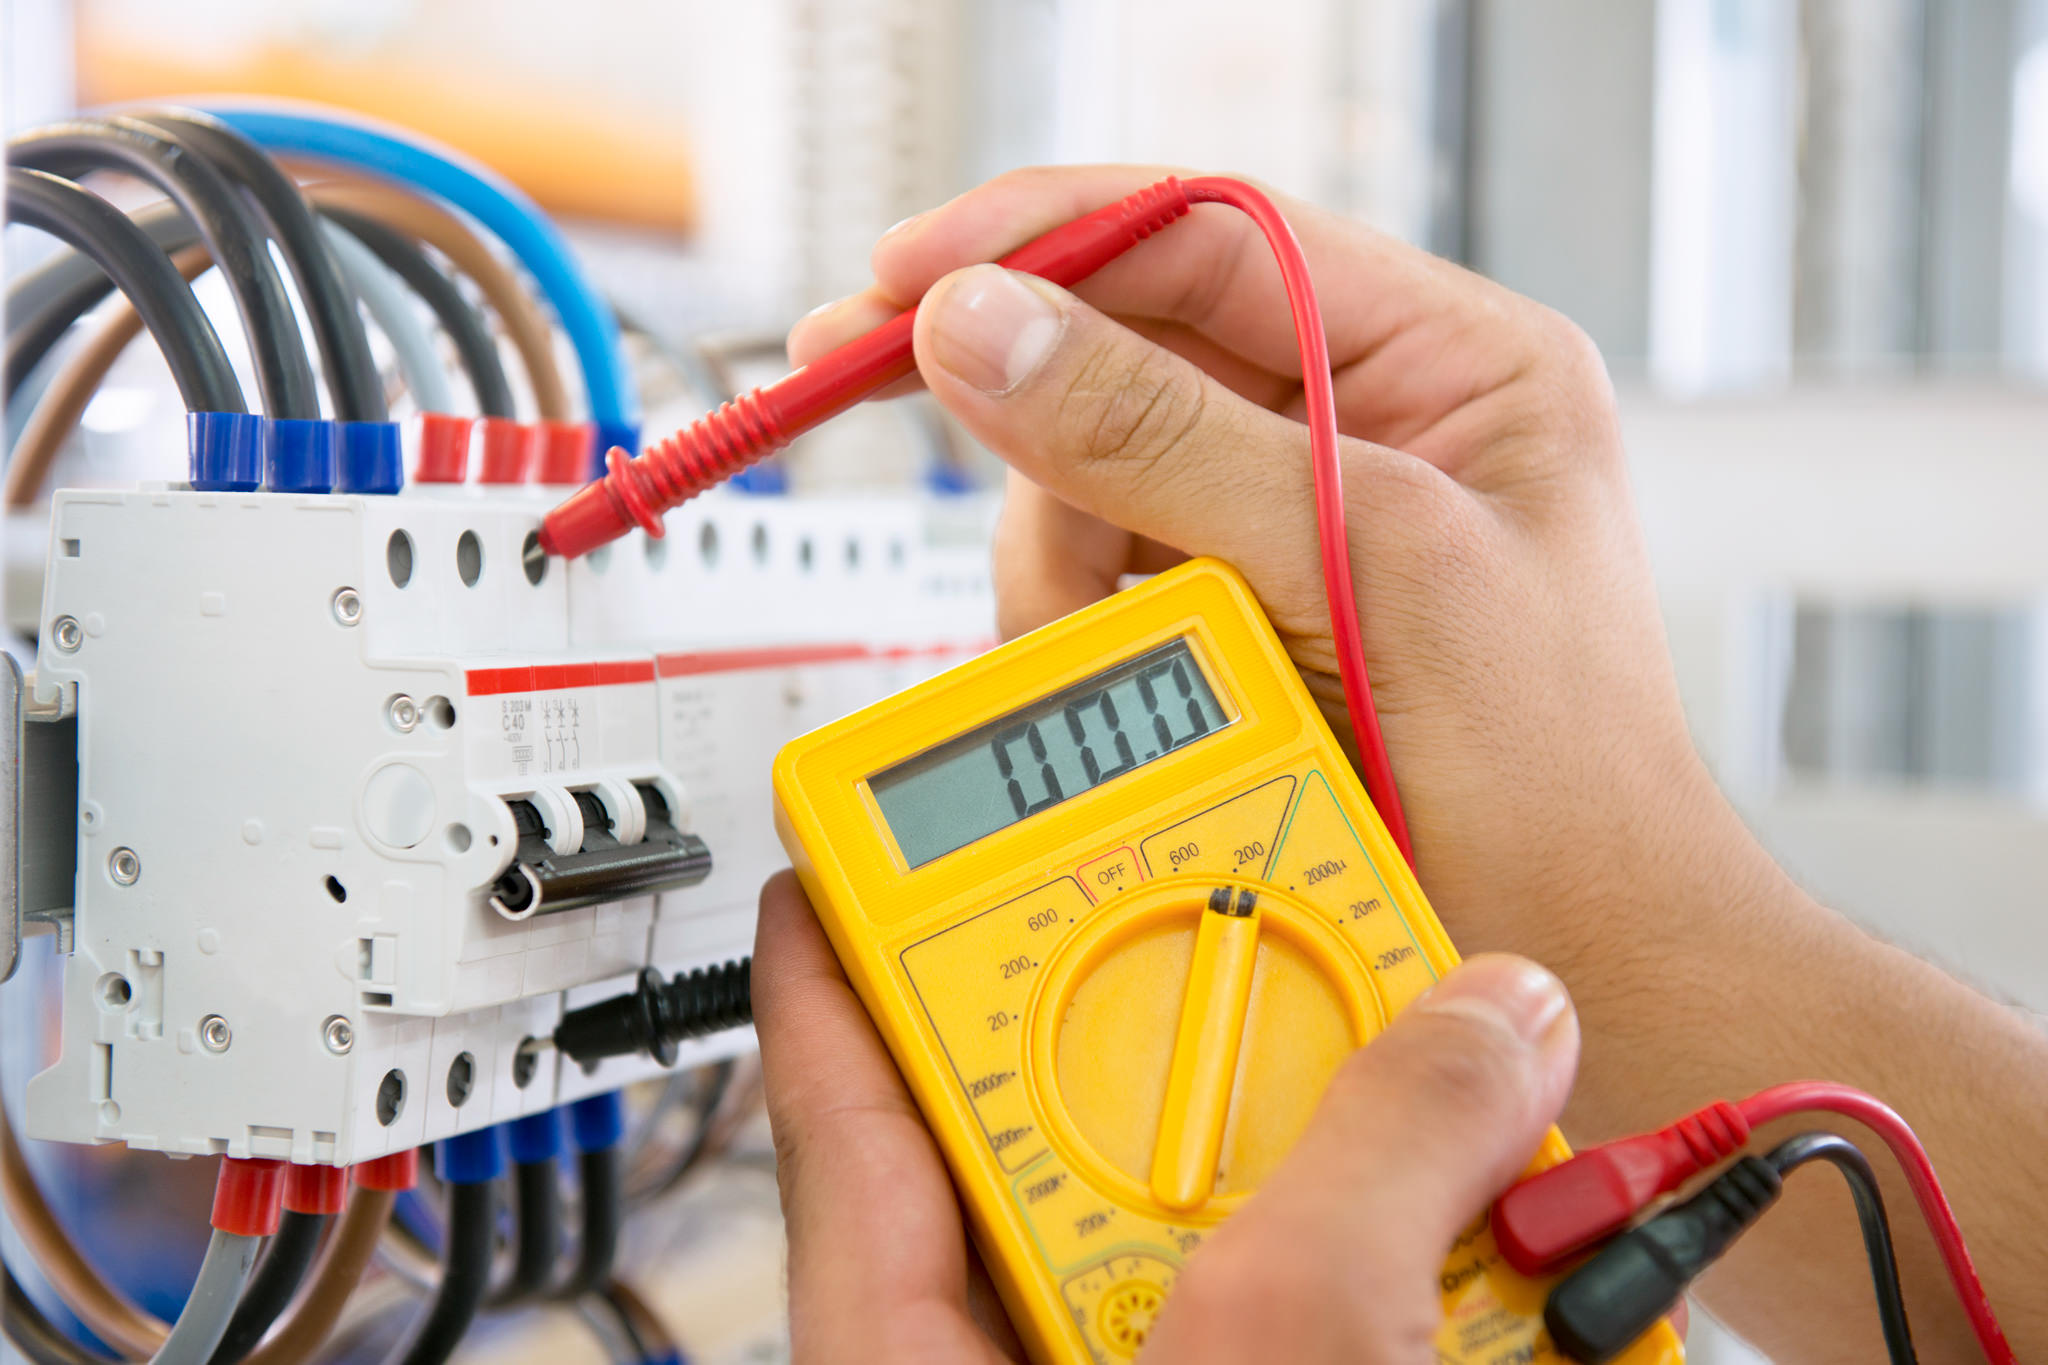 Electrical test and inspection